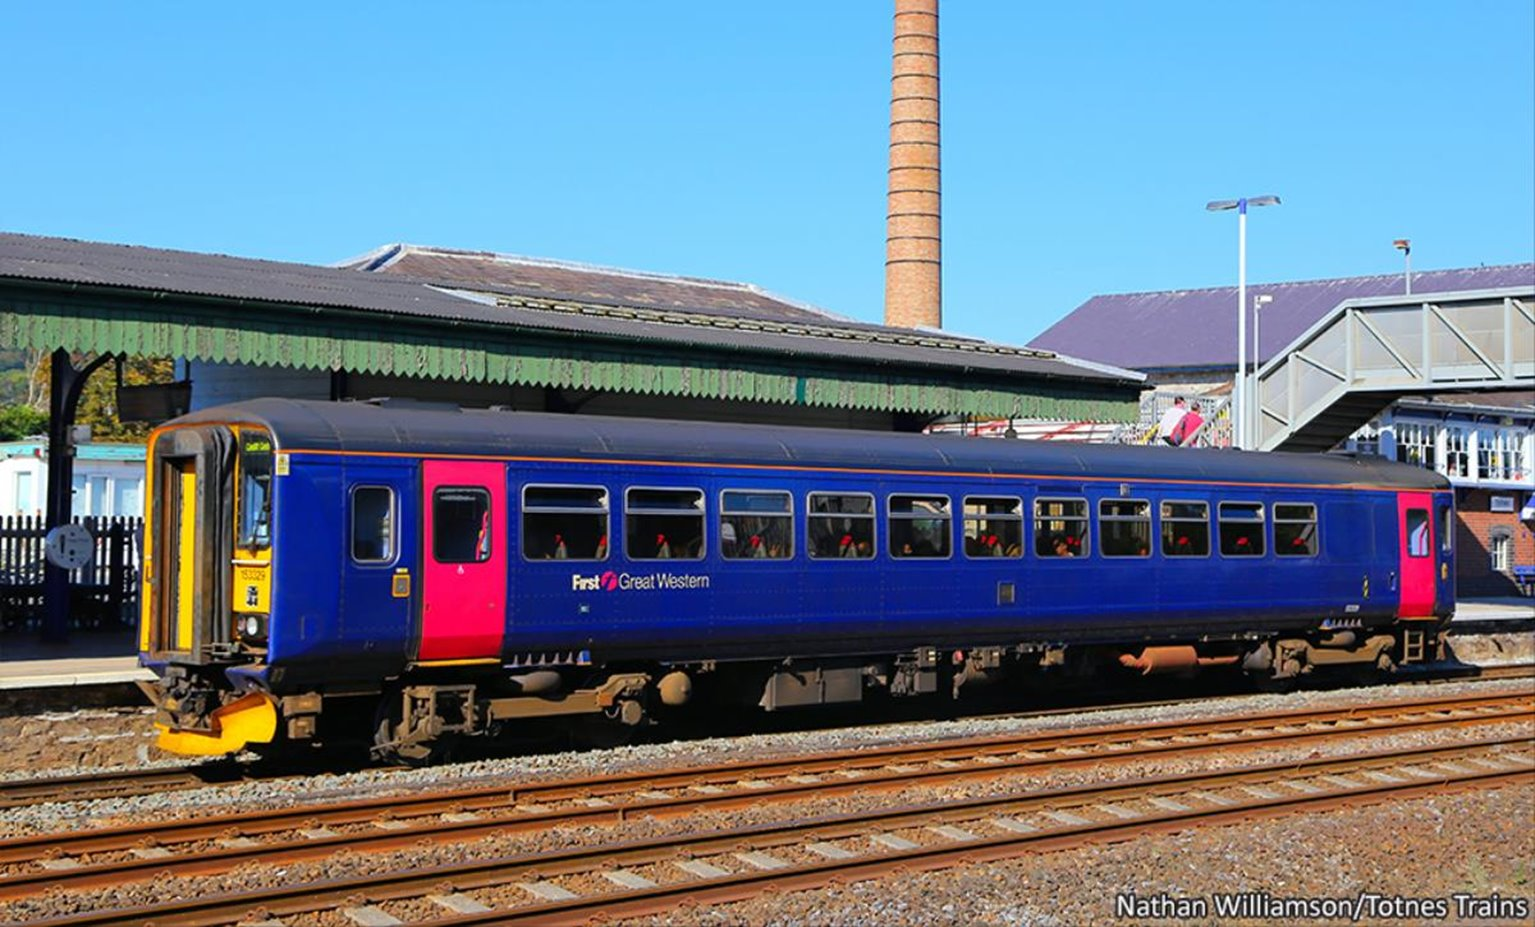 Class 153 329 First Great Western (Revised) Diesel Locomotive